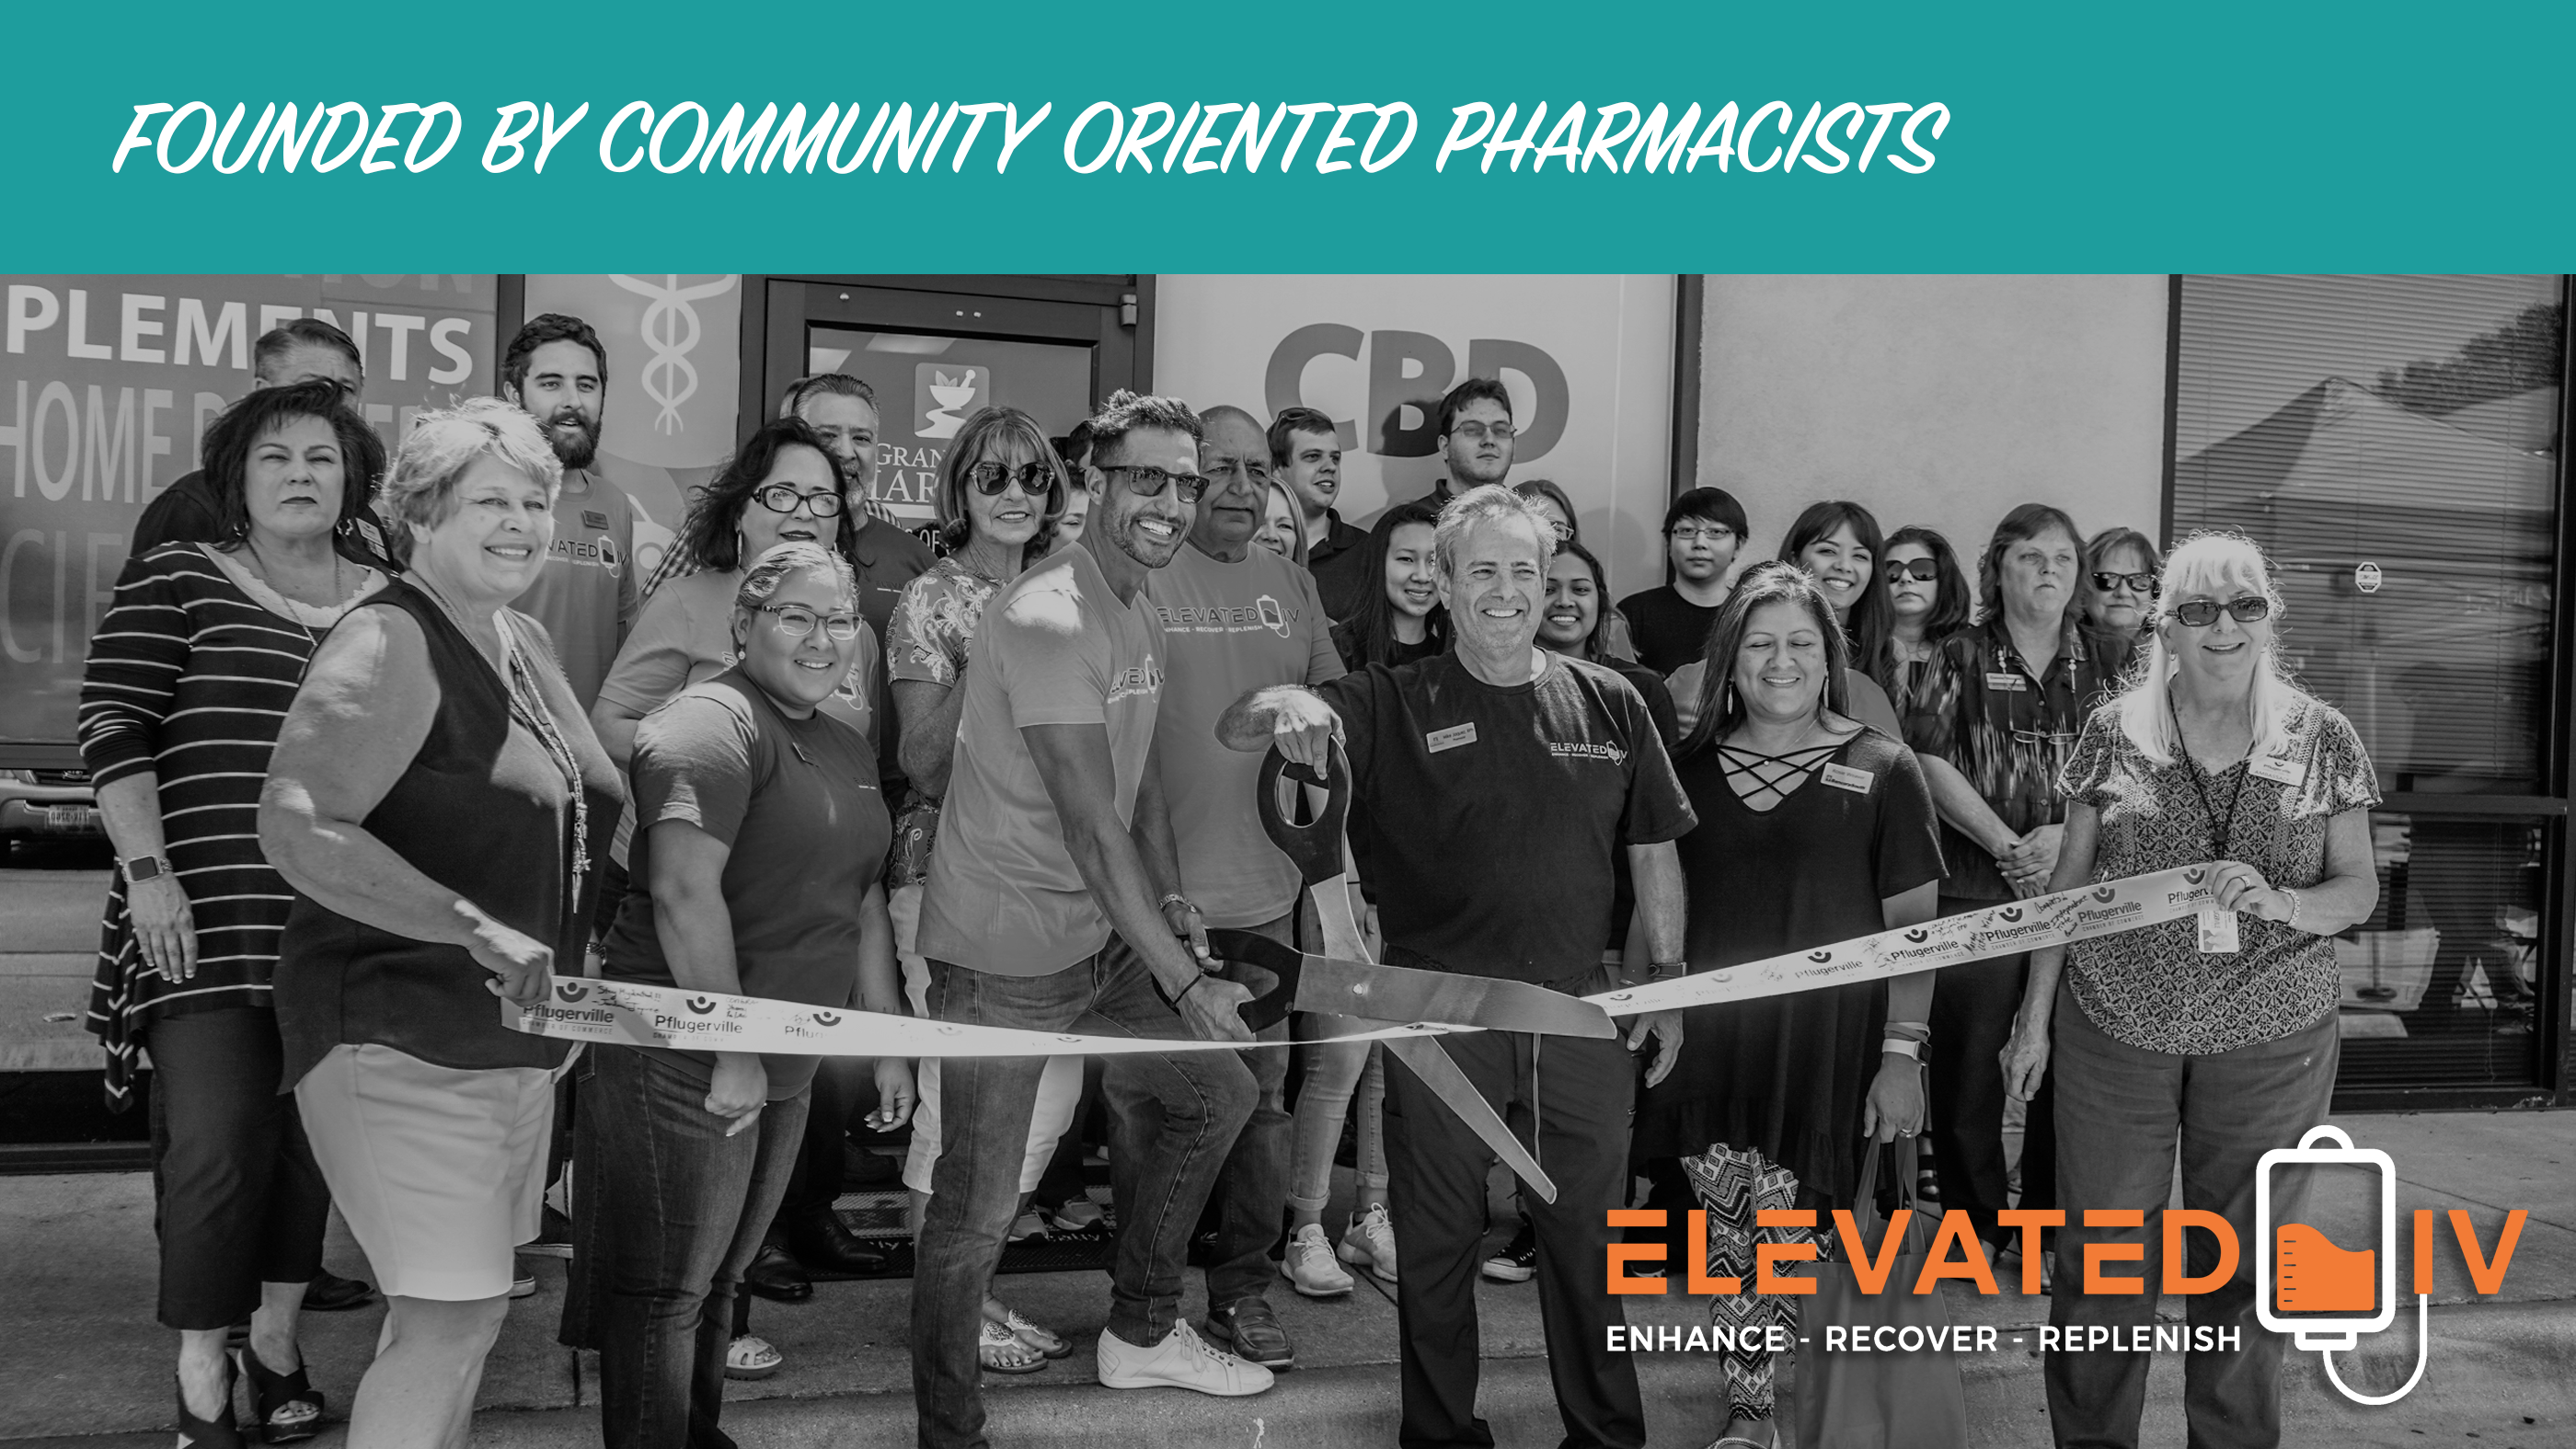 The staff of Elevated IV at the company's Ribbon Cutting Ceremony in Pflugerville, TX